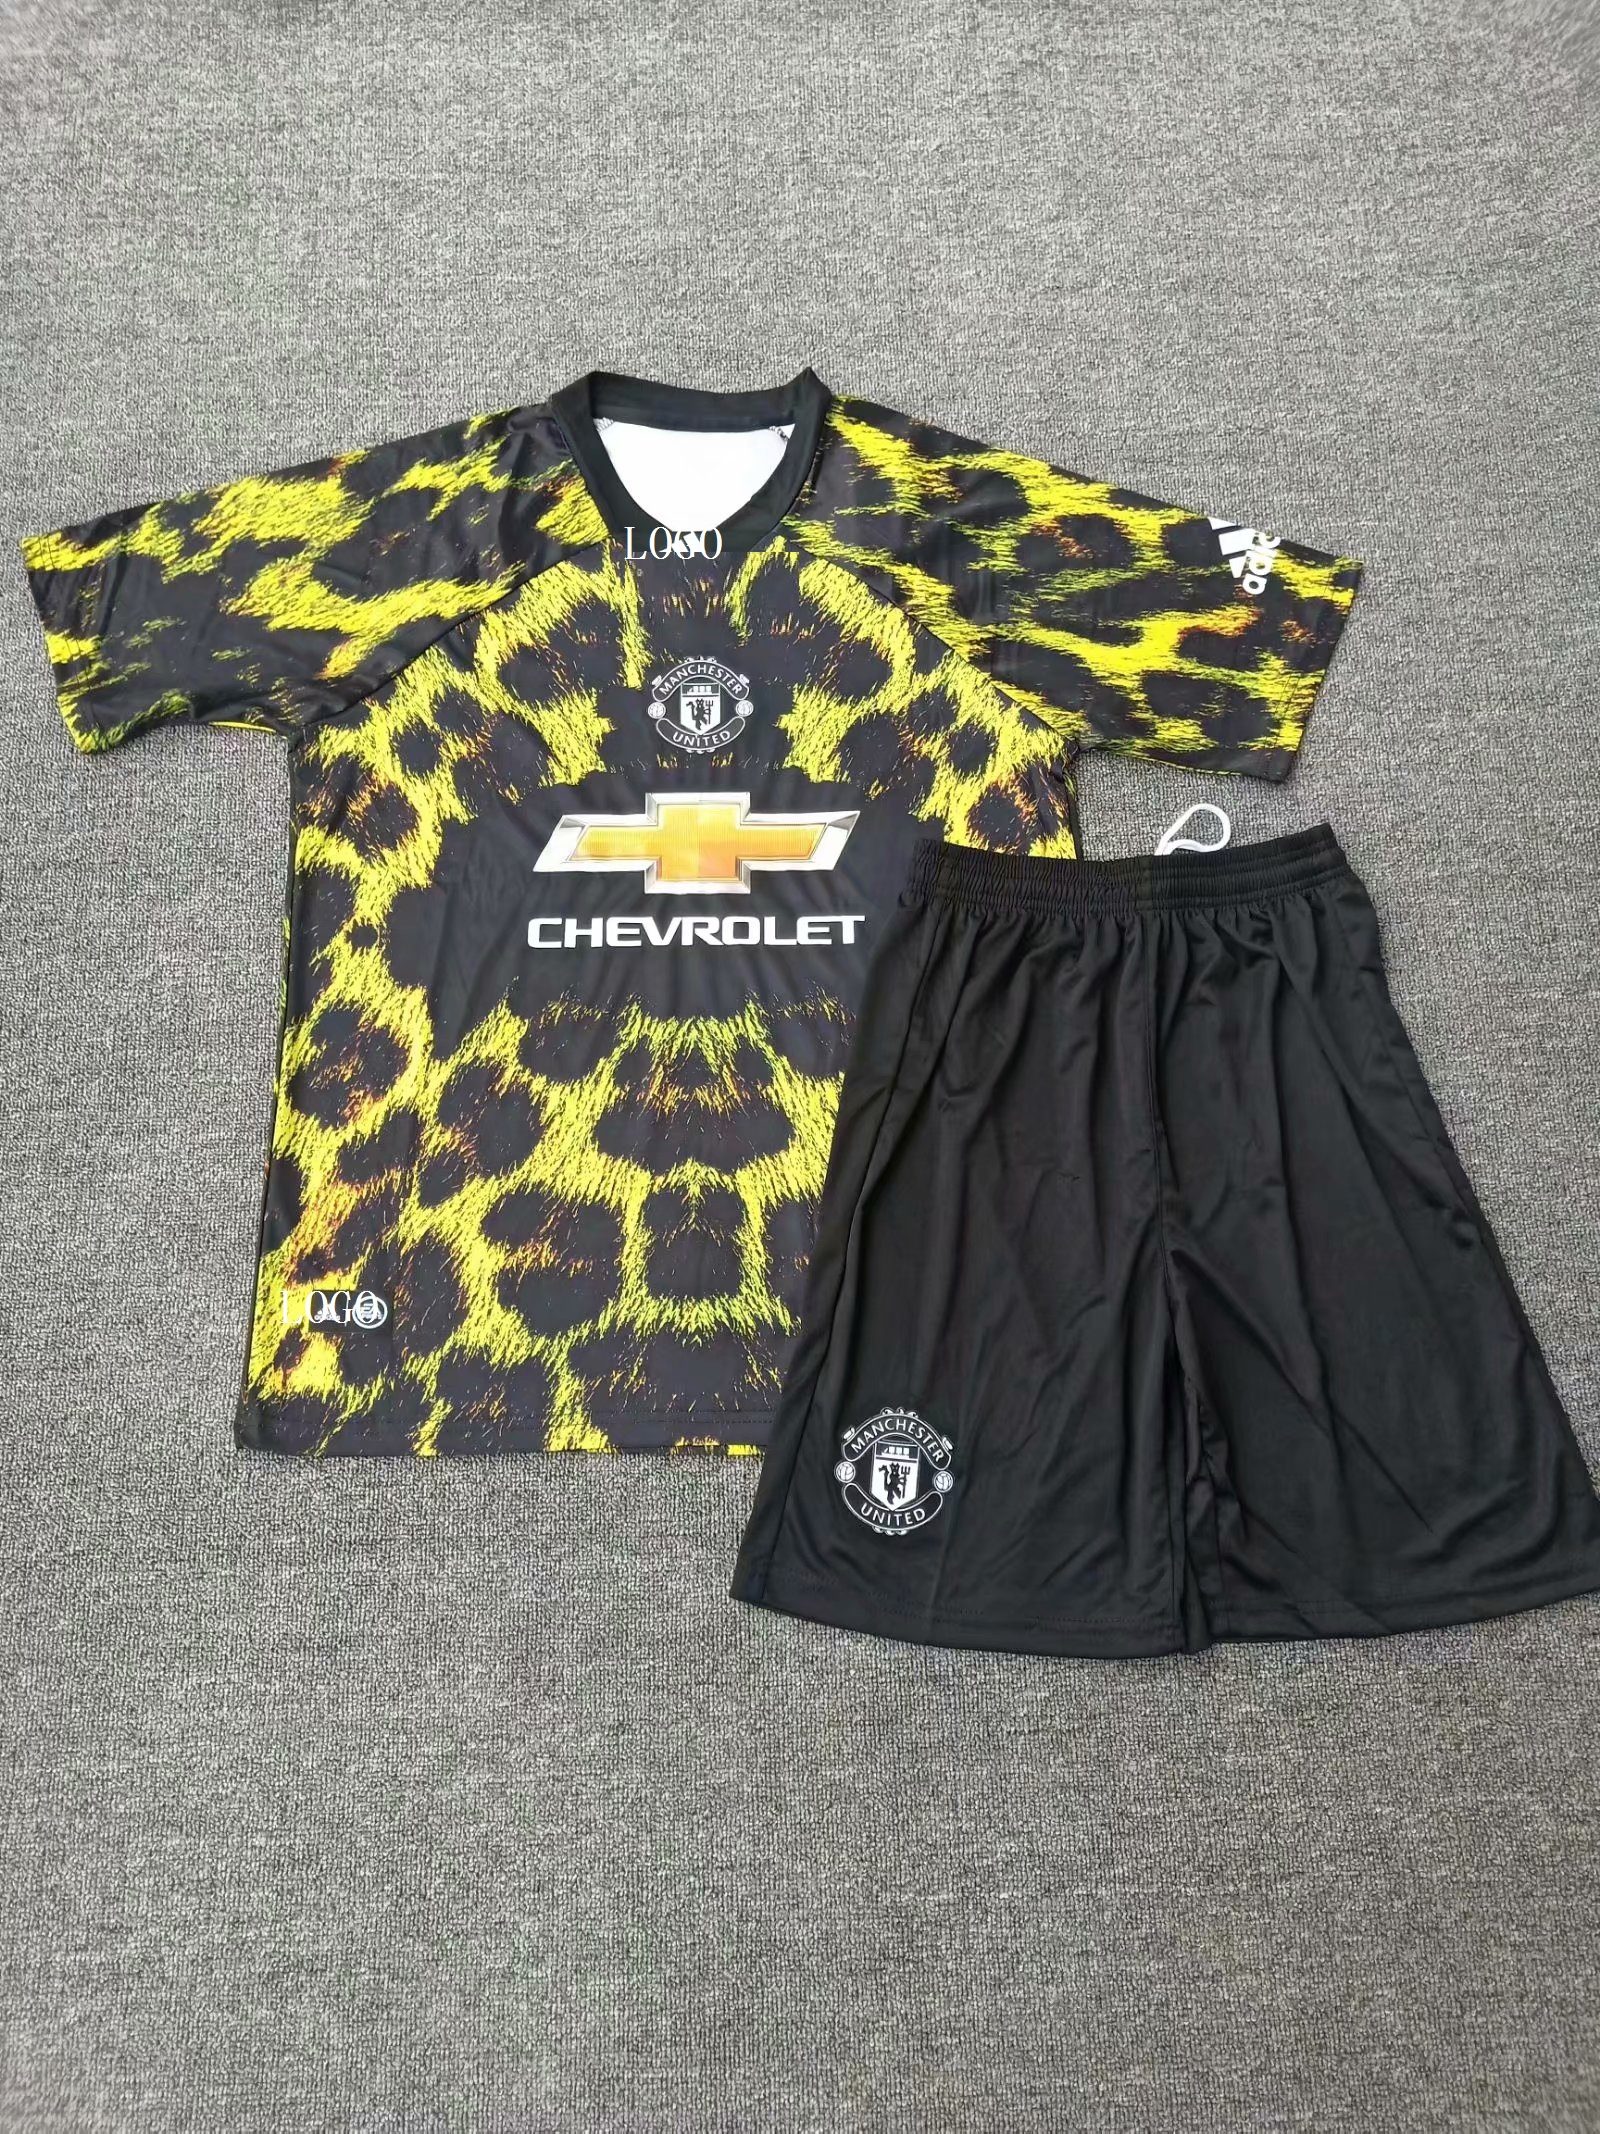 release date: 1cc8a 5ae04 2019/20 ADULT MANCHESTER UNITED EA SPORTS JERSEY UNIFORM